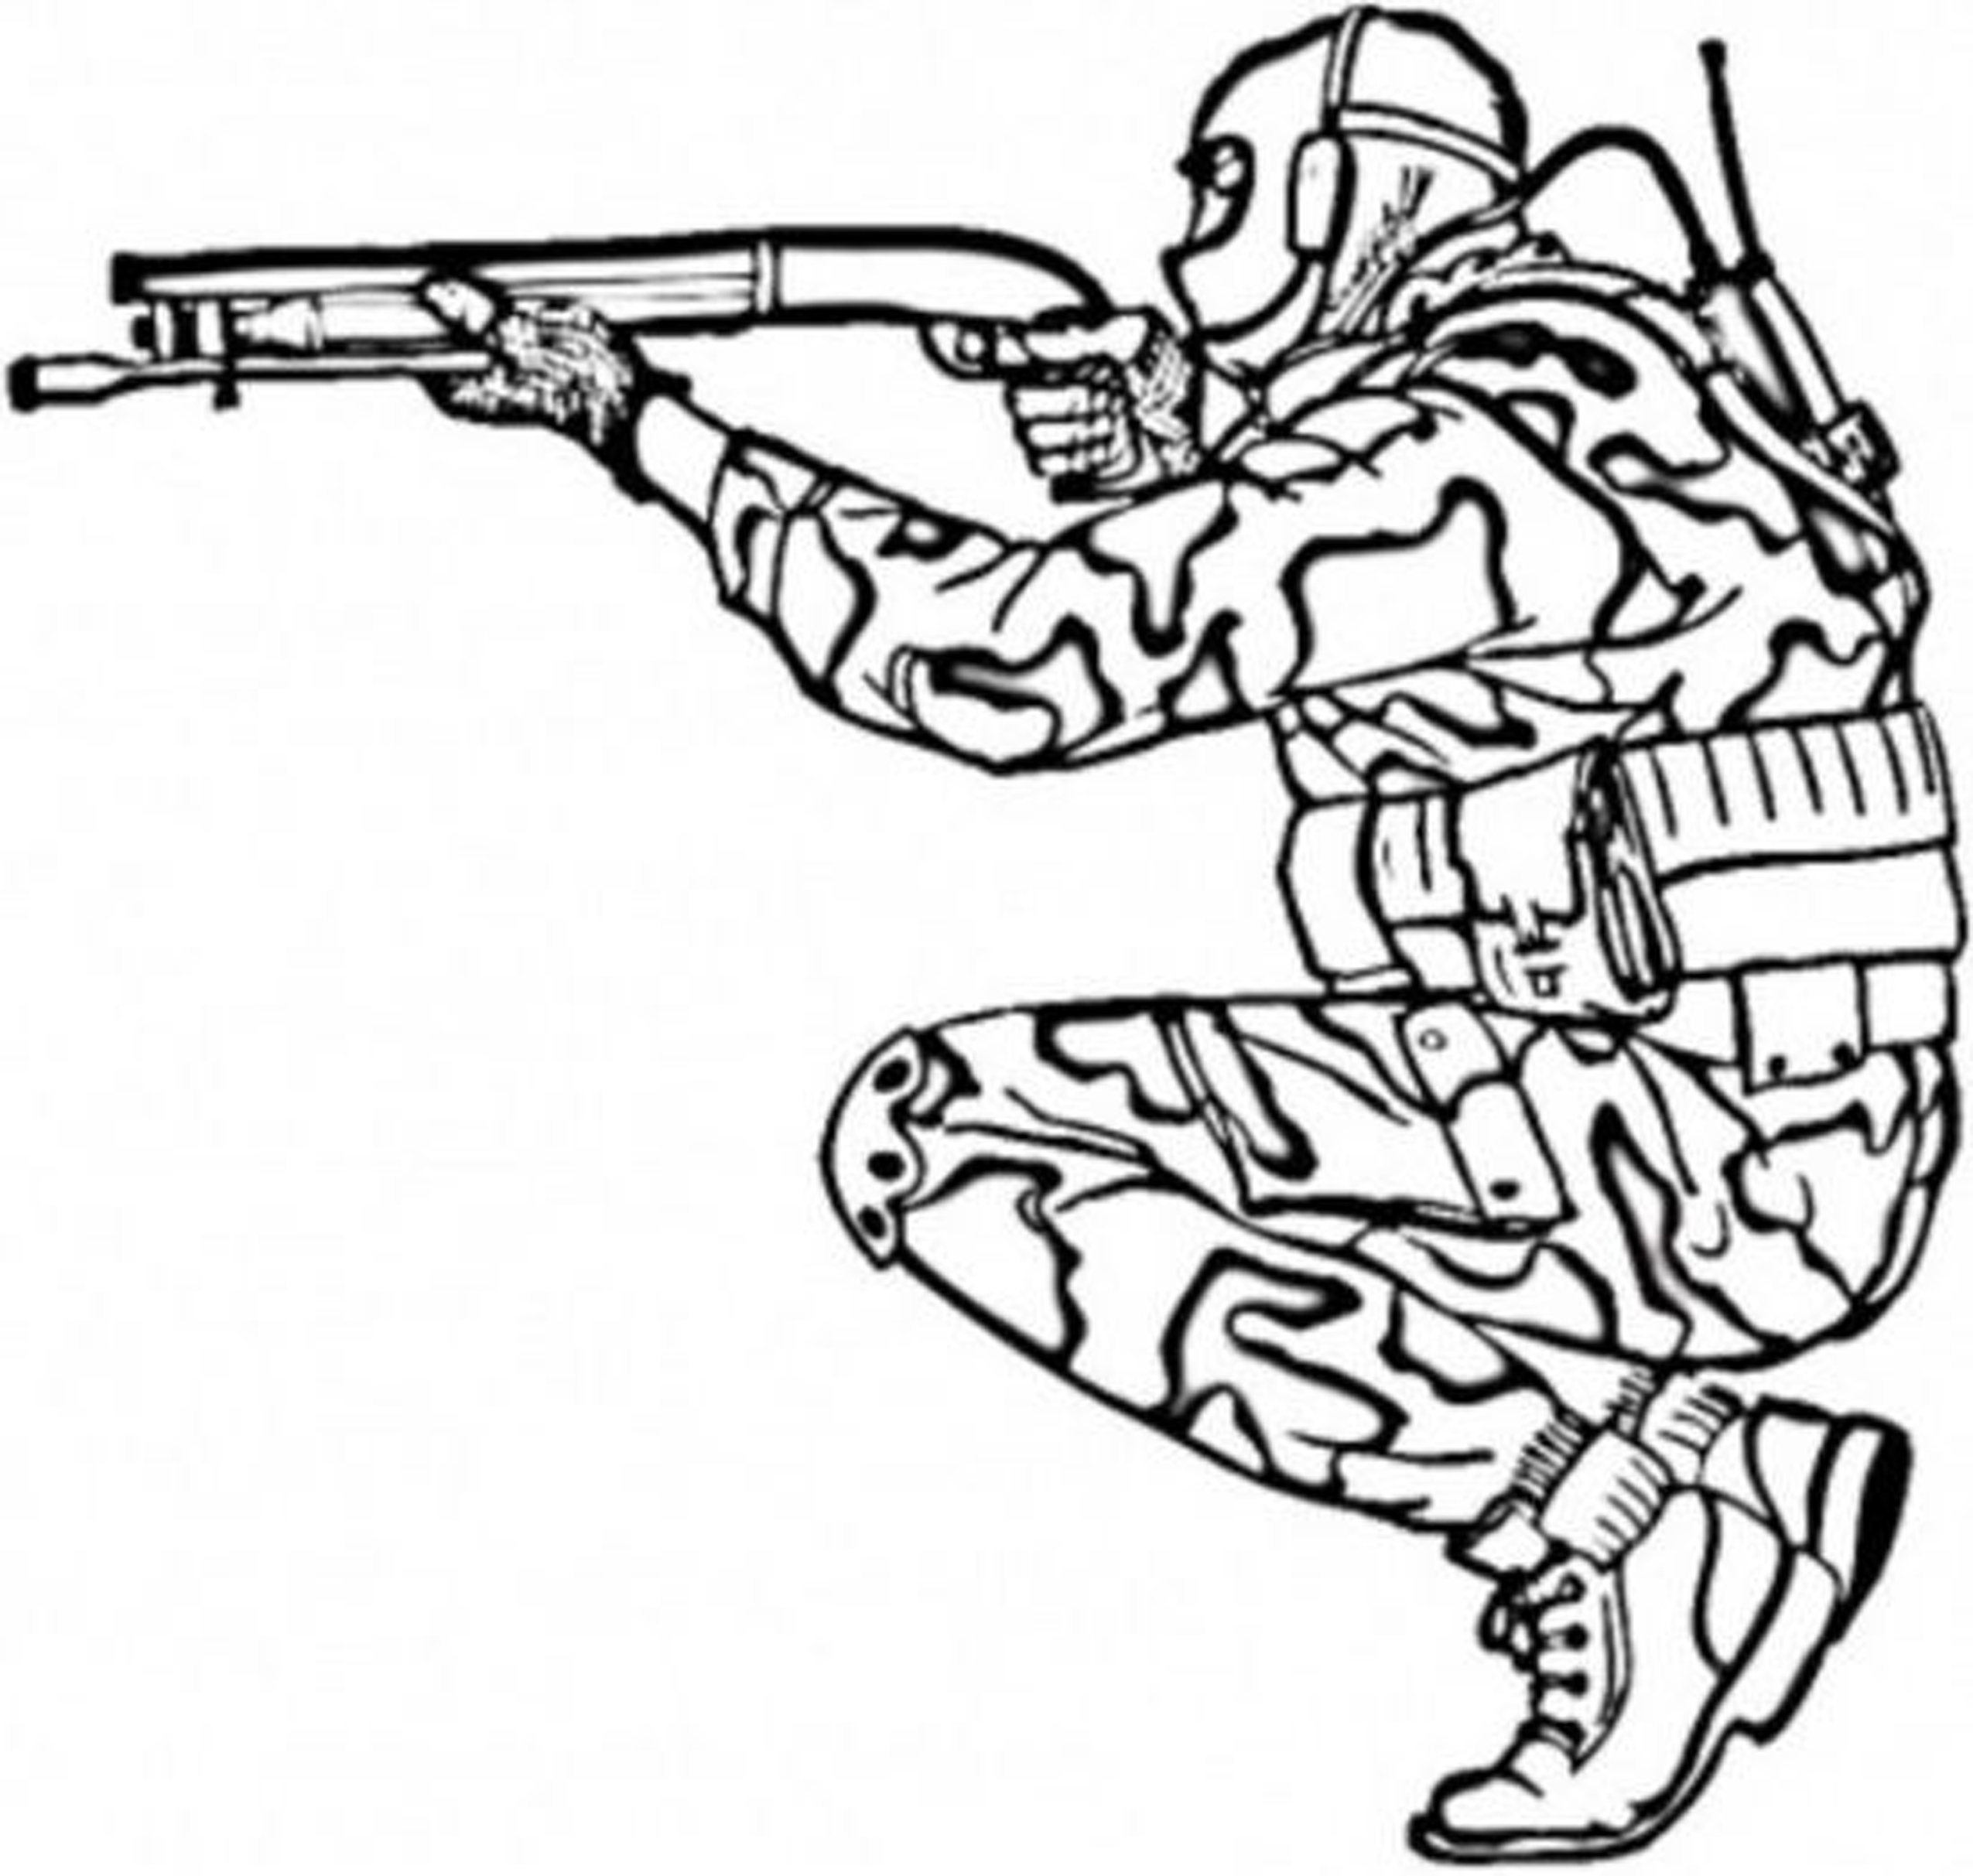 Army Soldiers Drawing at GetDrawings.com | Free for personal use ...